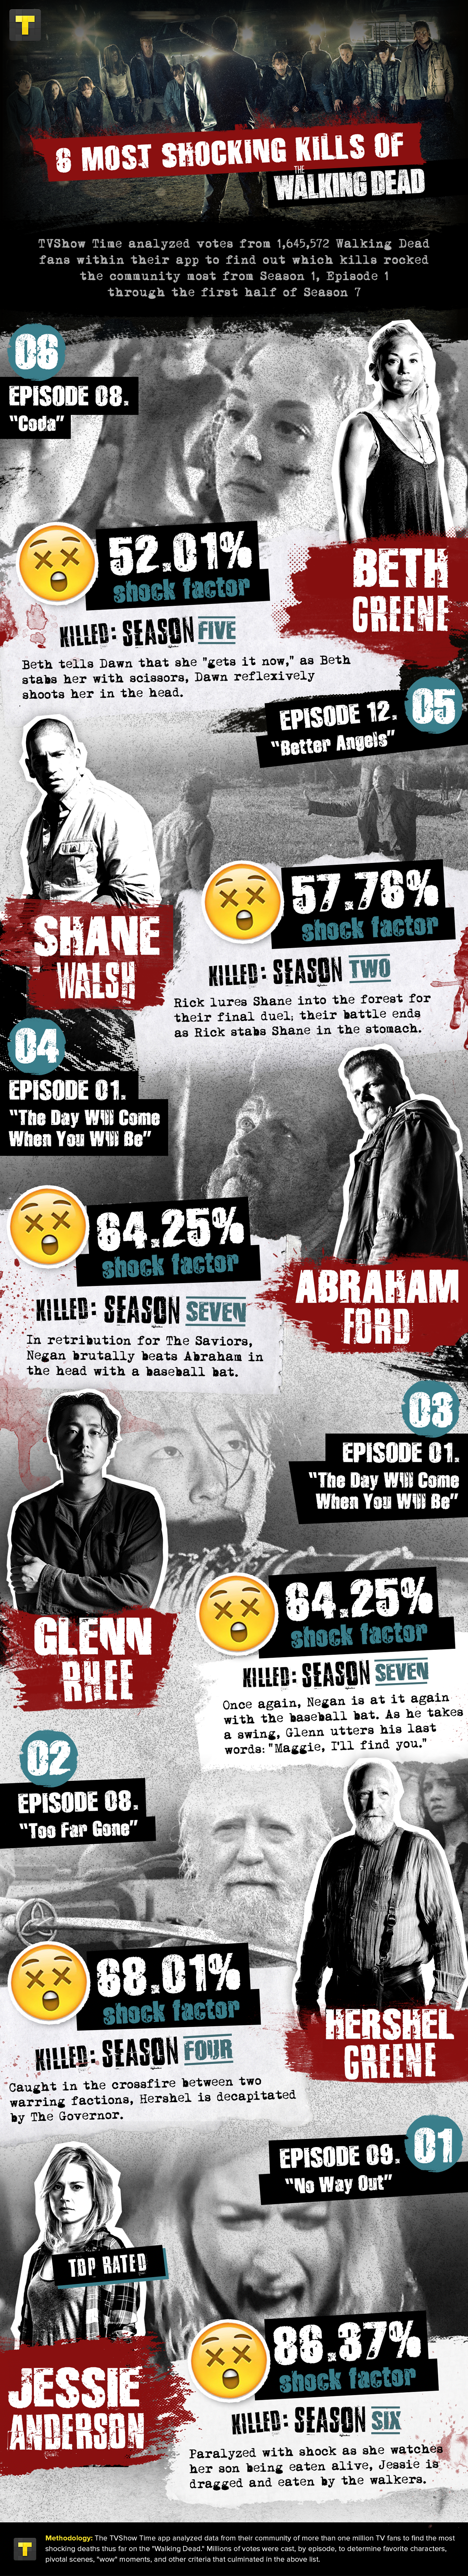 The Walking Dead infographic - Shocking Deaths